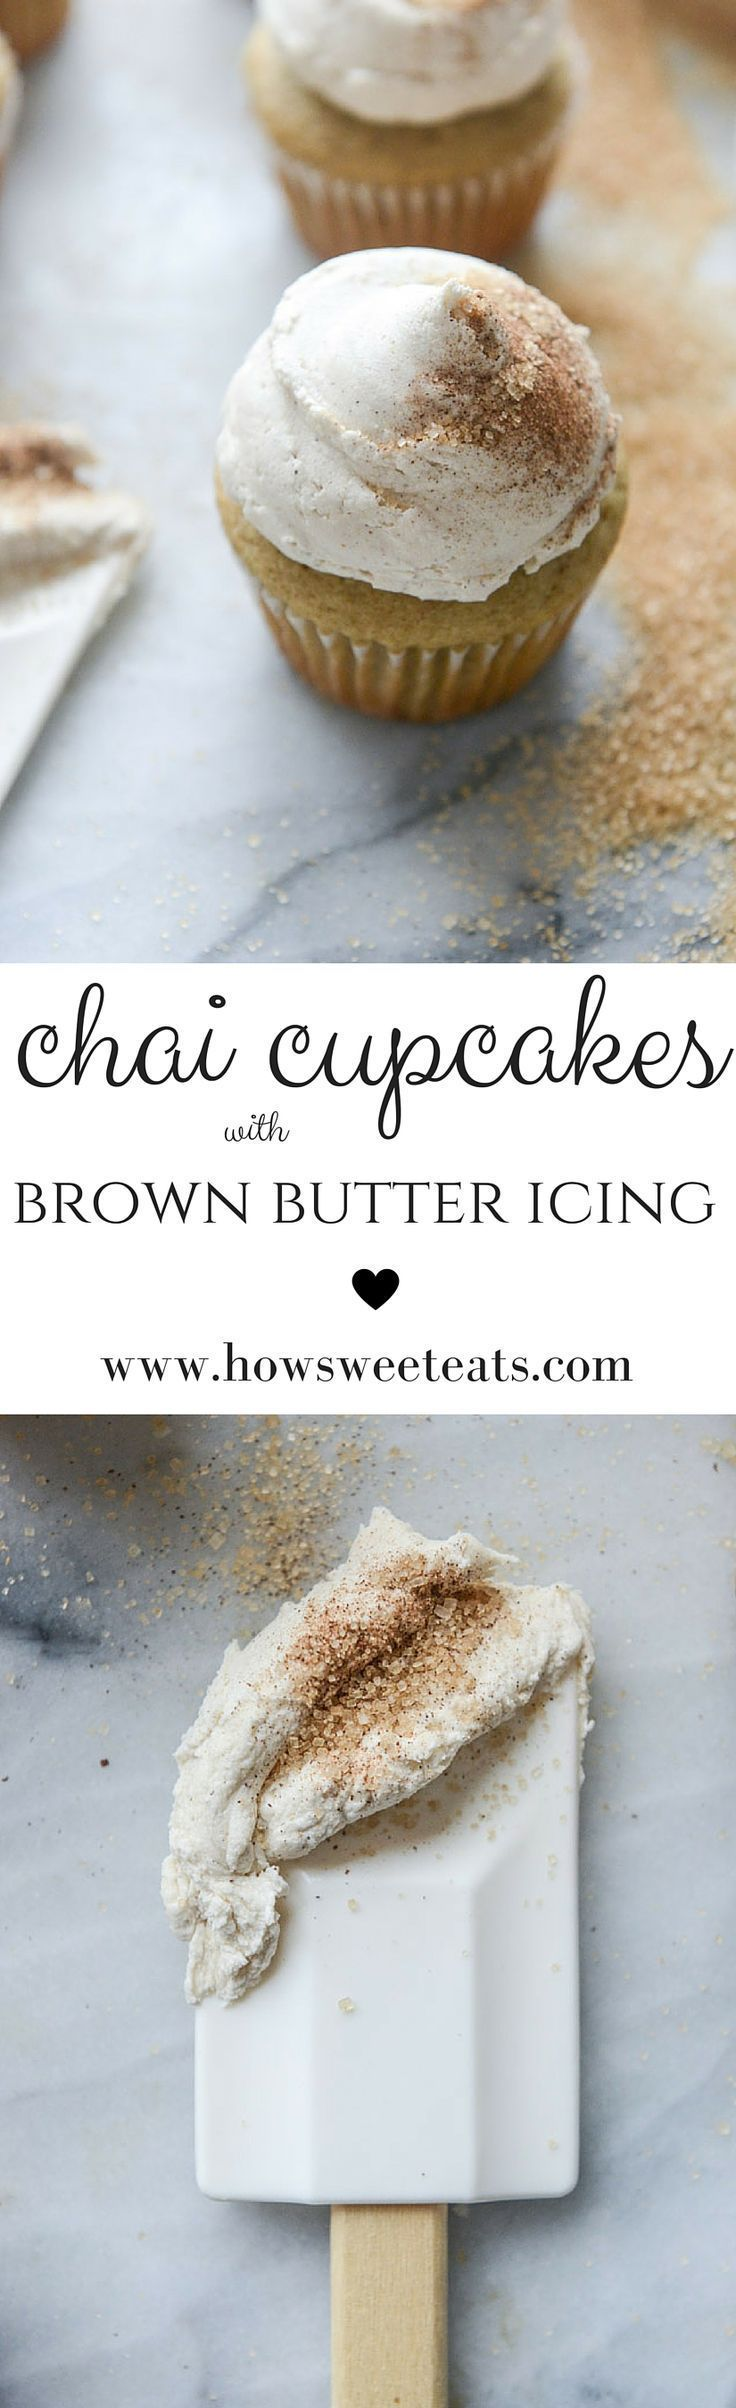 Chai Cupcakes by @howsweeteats I http://howsweeteats.com